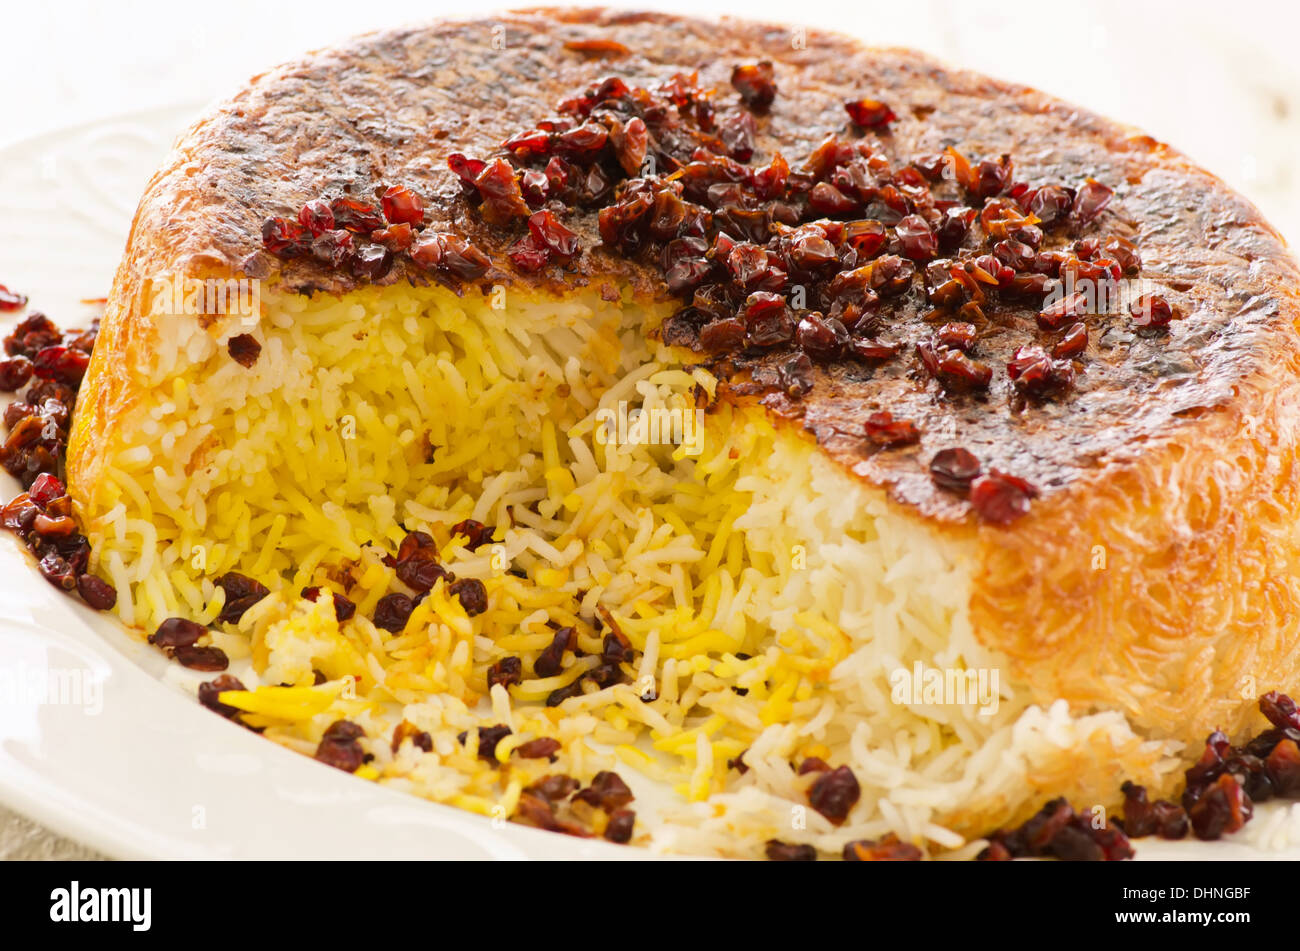 My Asia Küche Lichterfelde Ost Persian Rice With Berberis Tadig Stock Photo 62554115 Alamy